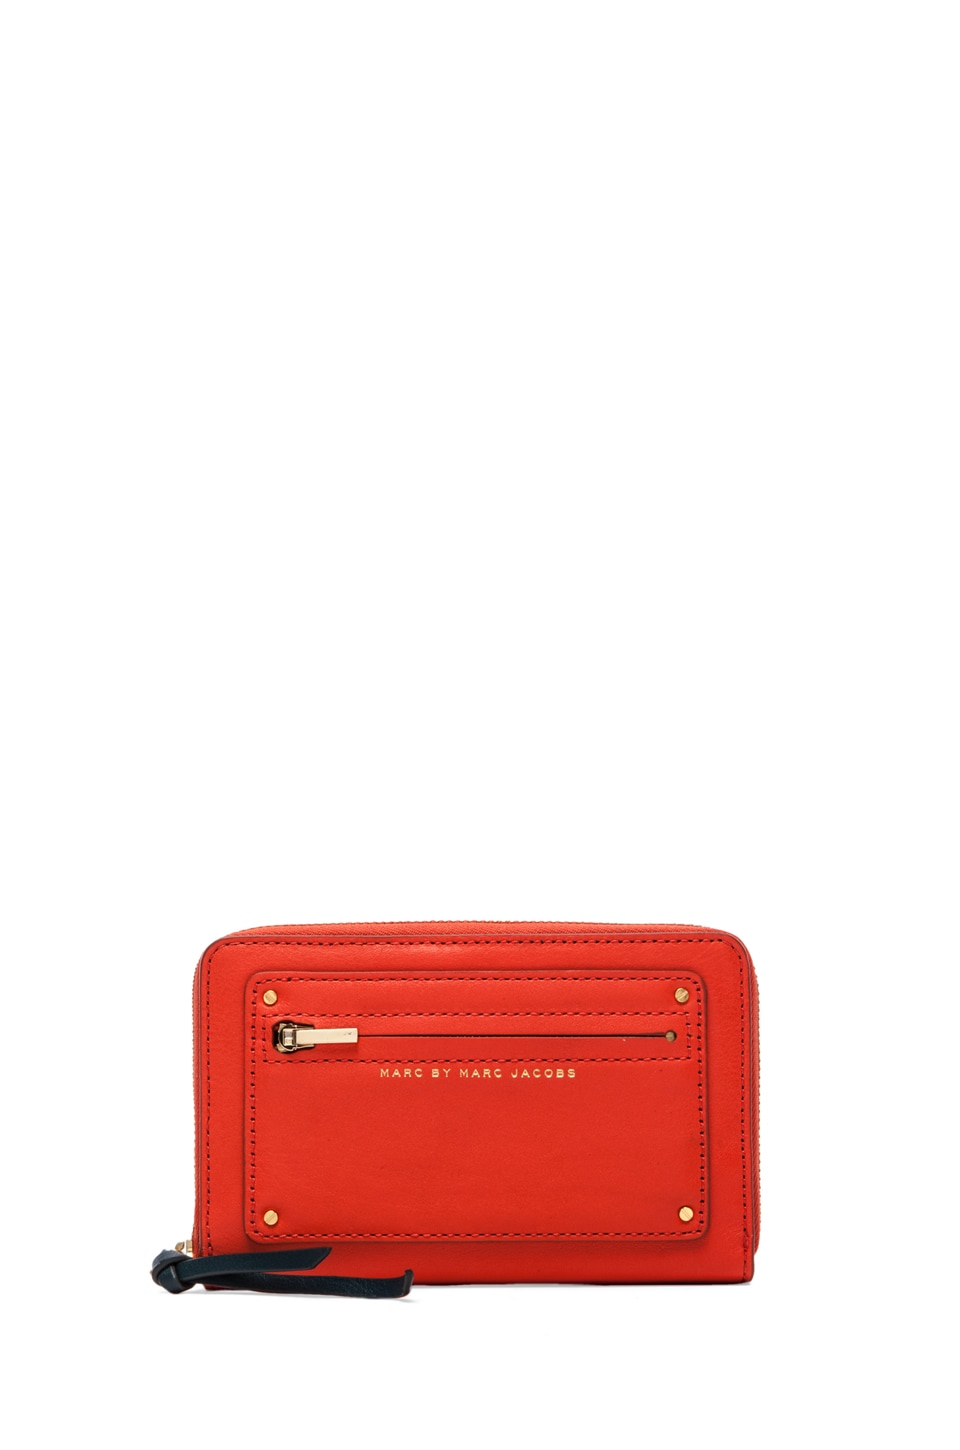 Marc by Marc Jacobs Military Leather Wingman in Orange Glow